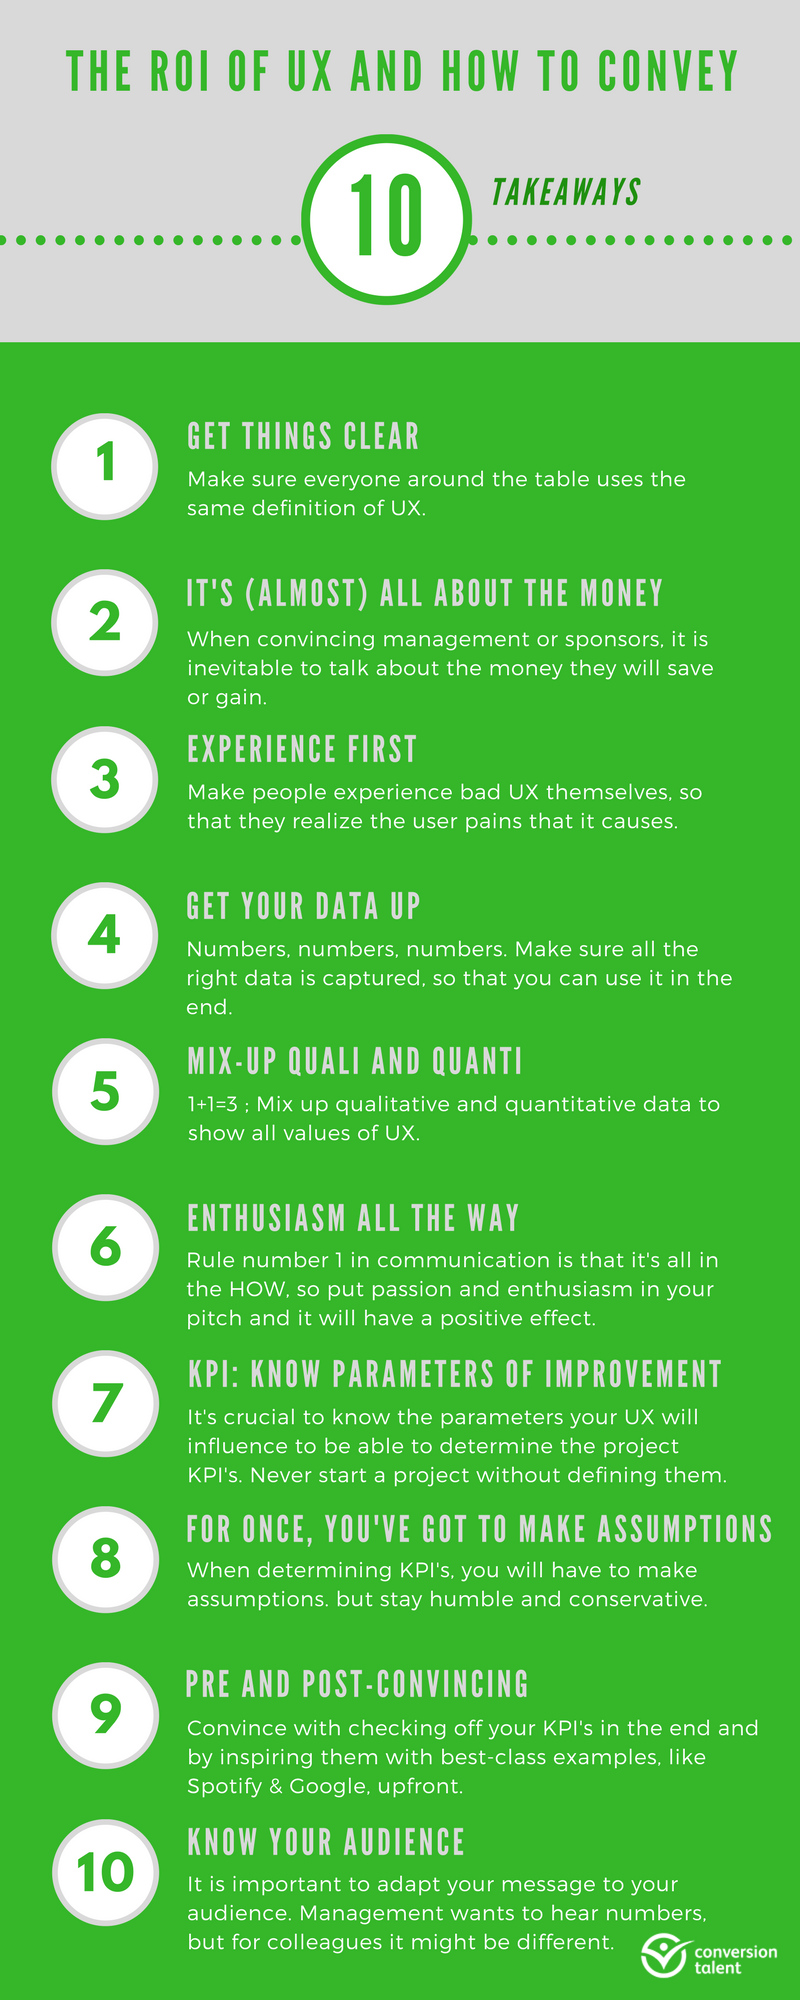 ROI of UX and How to Convey